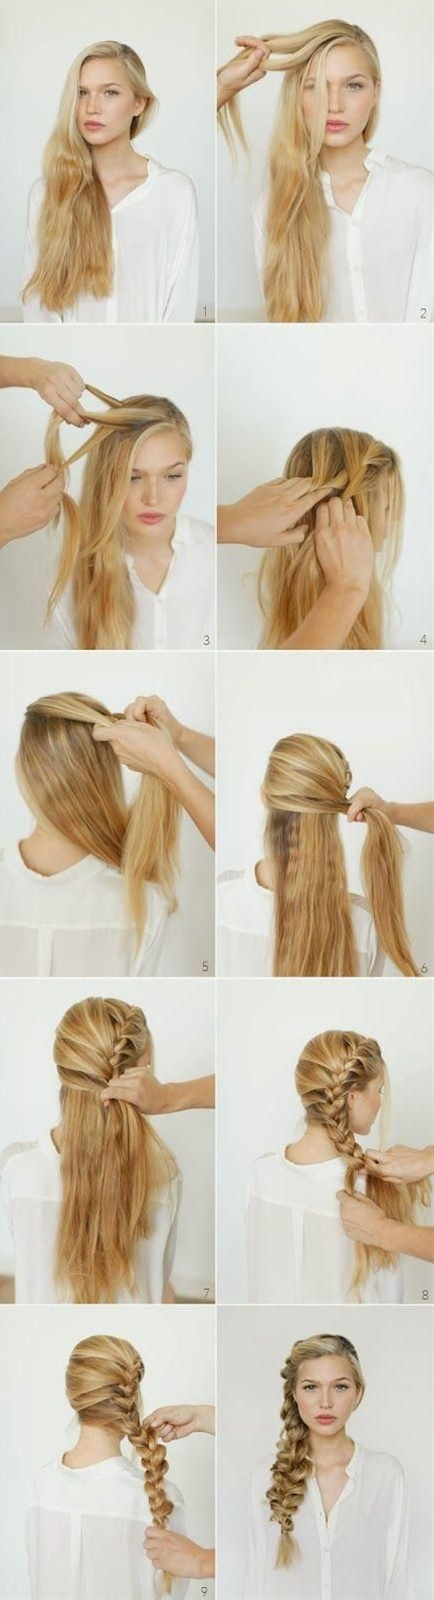 Do you want to create a new and fun hairstyle on on your long hair? You can refer the romantic side braided hairstyle.